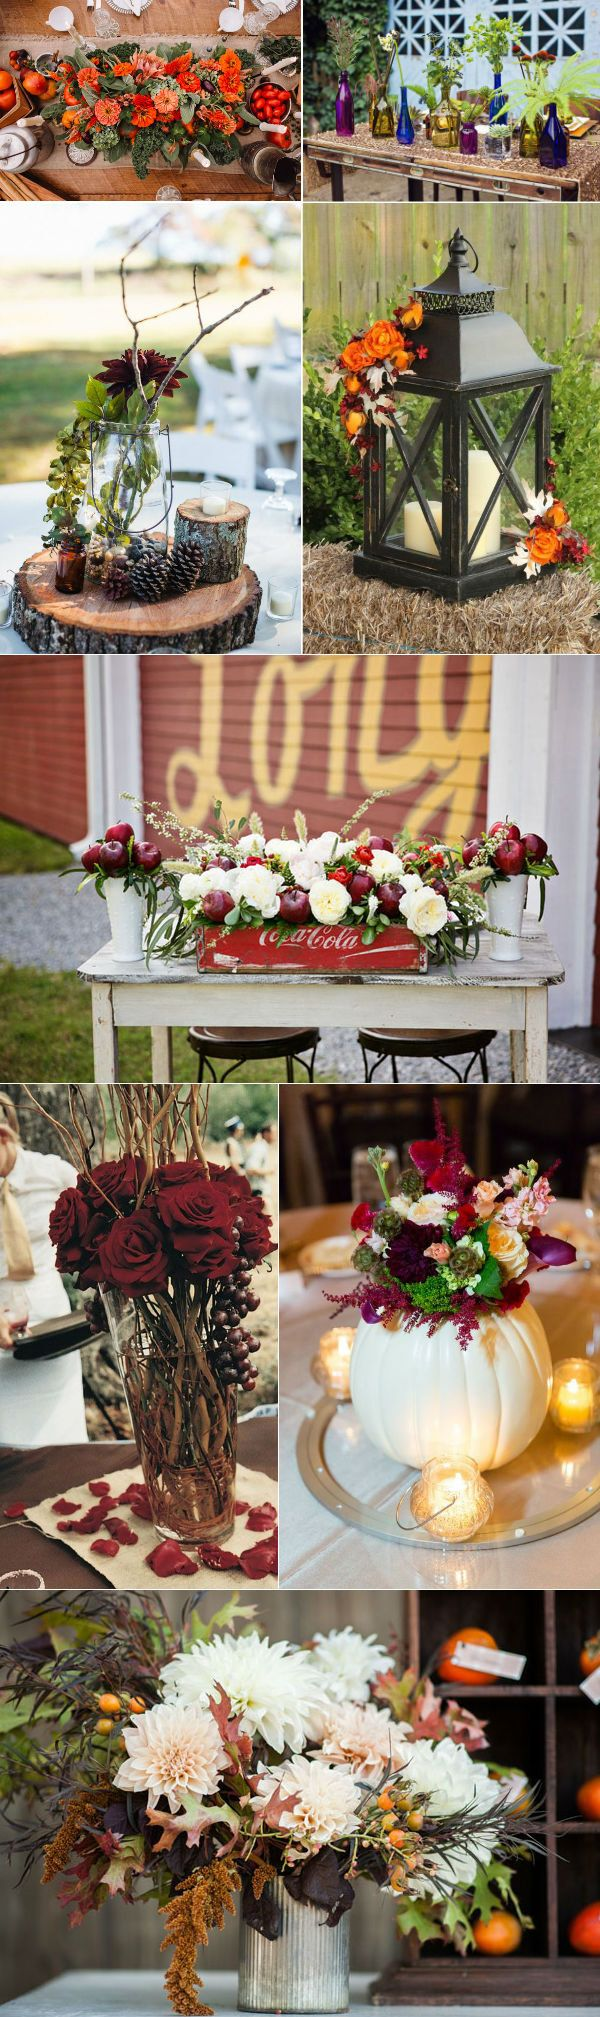 42 Awesome Fall Wedding Ideas For 2016 Wedding centerpieces